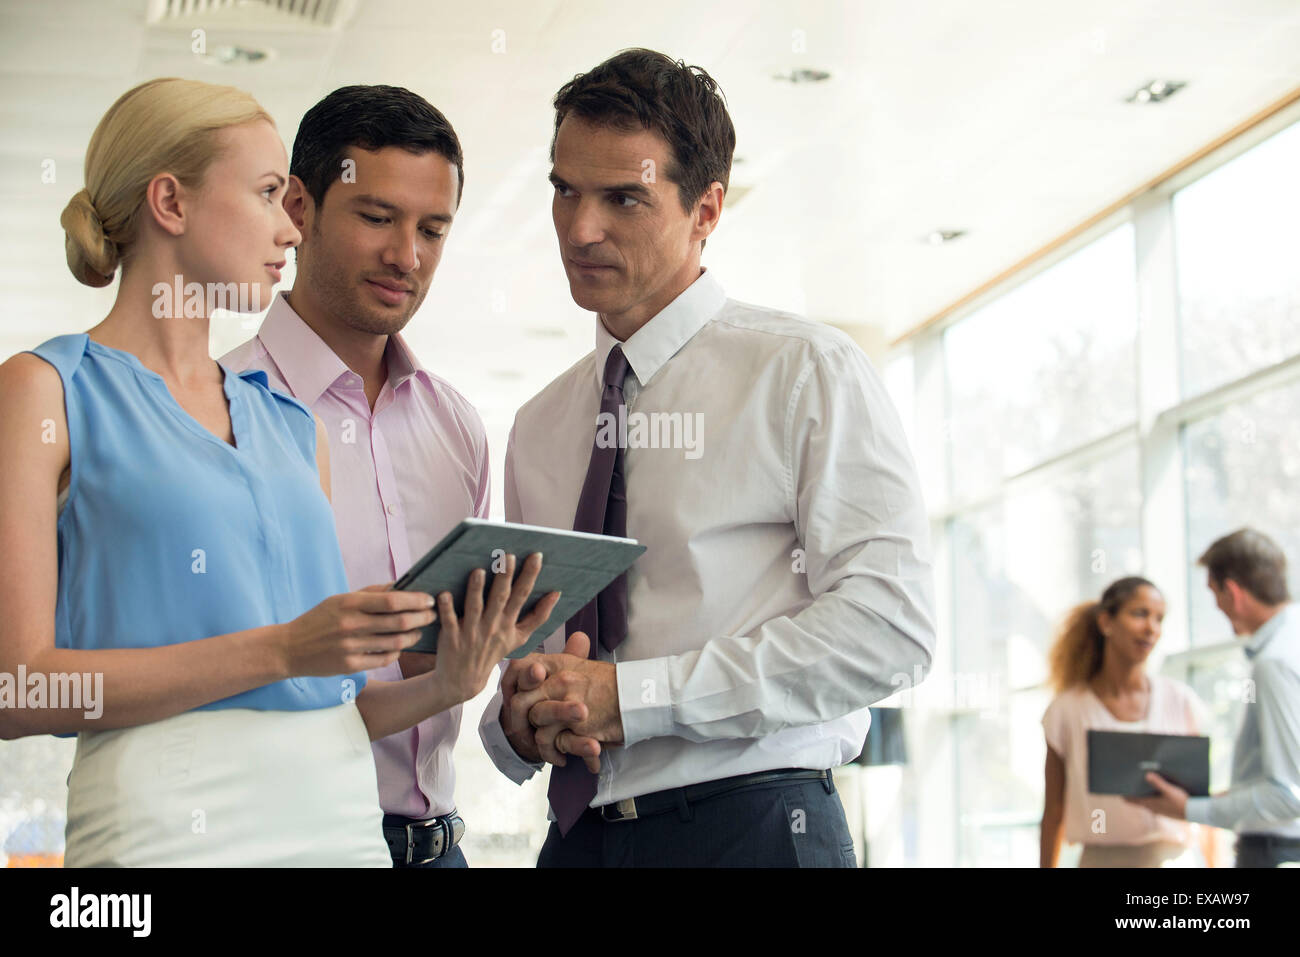 Colleagues looking at digital tablet together - Stock Image